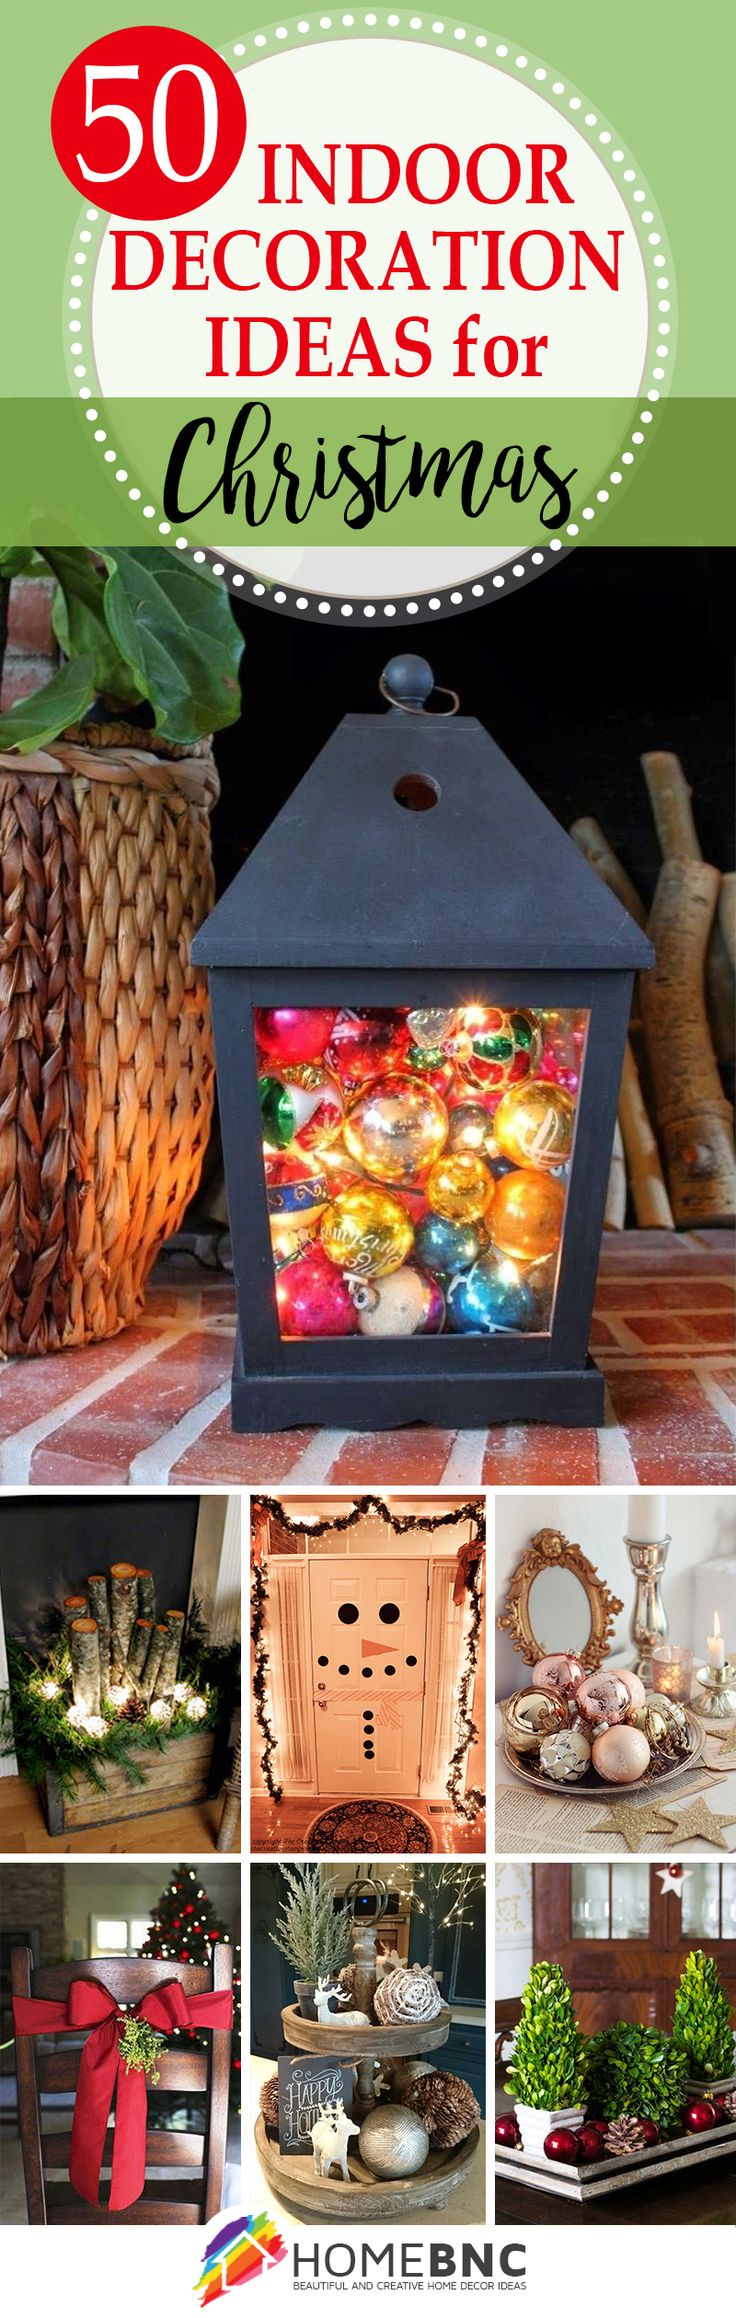 50 Indoor Decoration Ideas for Christmas that will Spark Your Creativity this Year